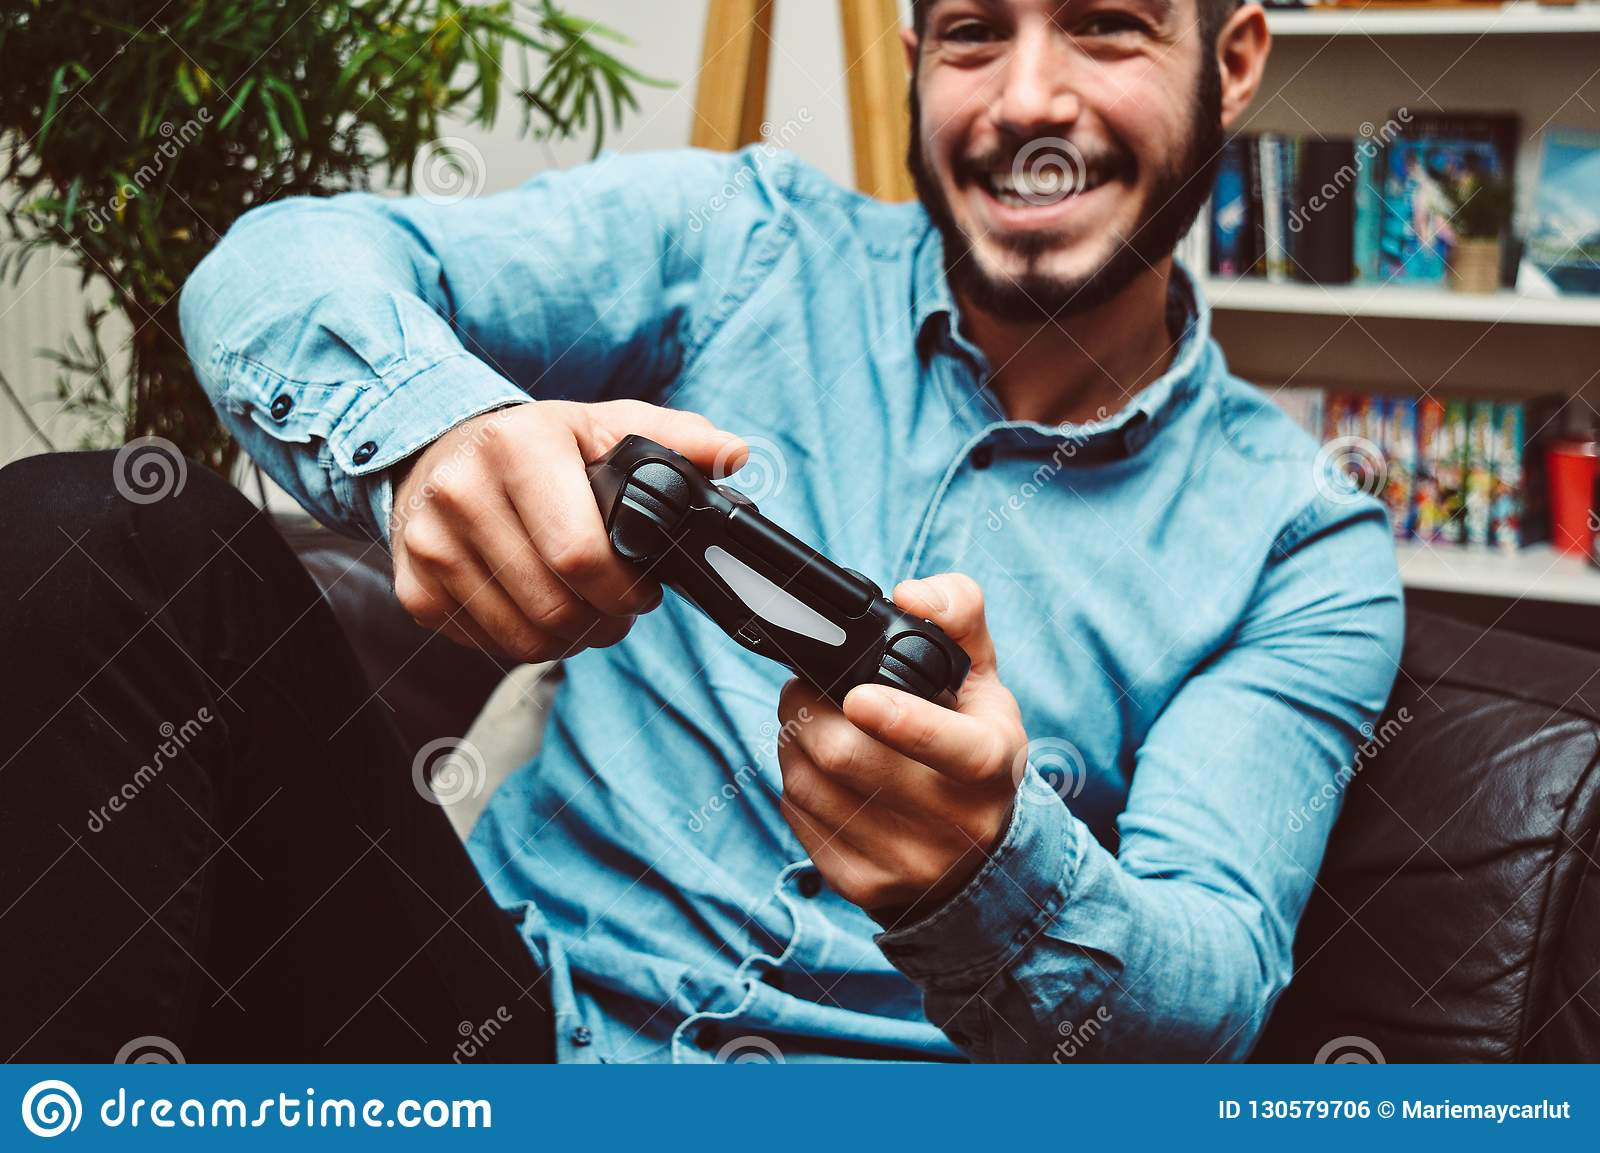 Happy smiling young handsome man playing video games and having fun at home